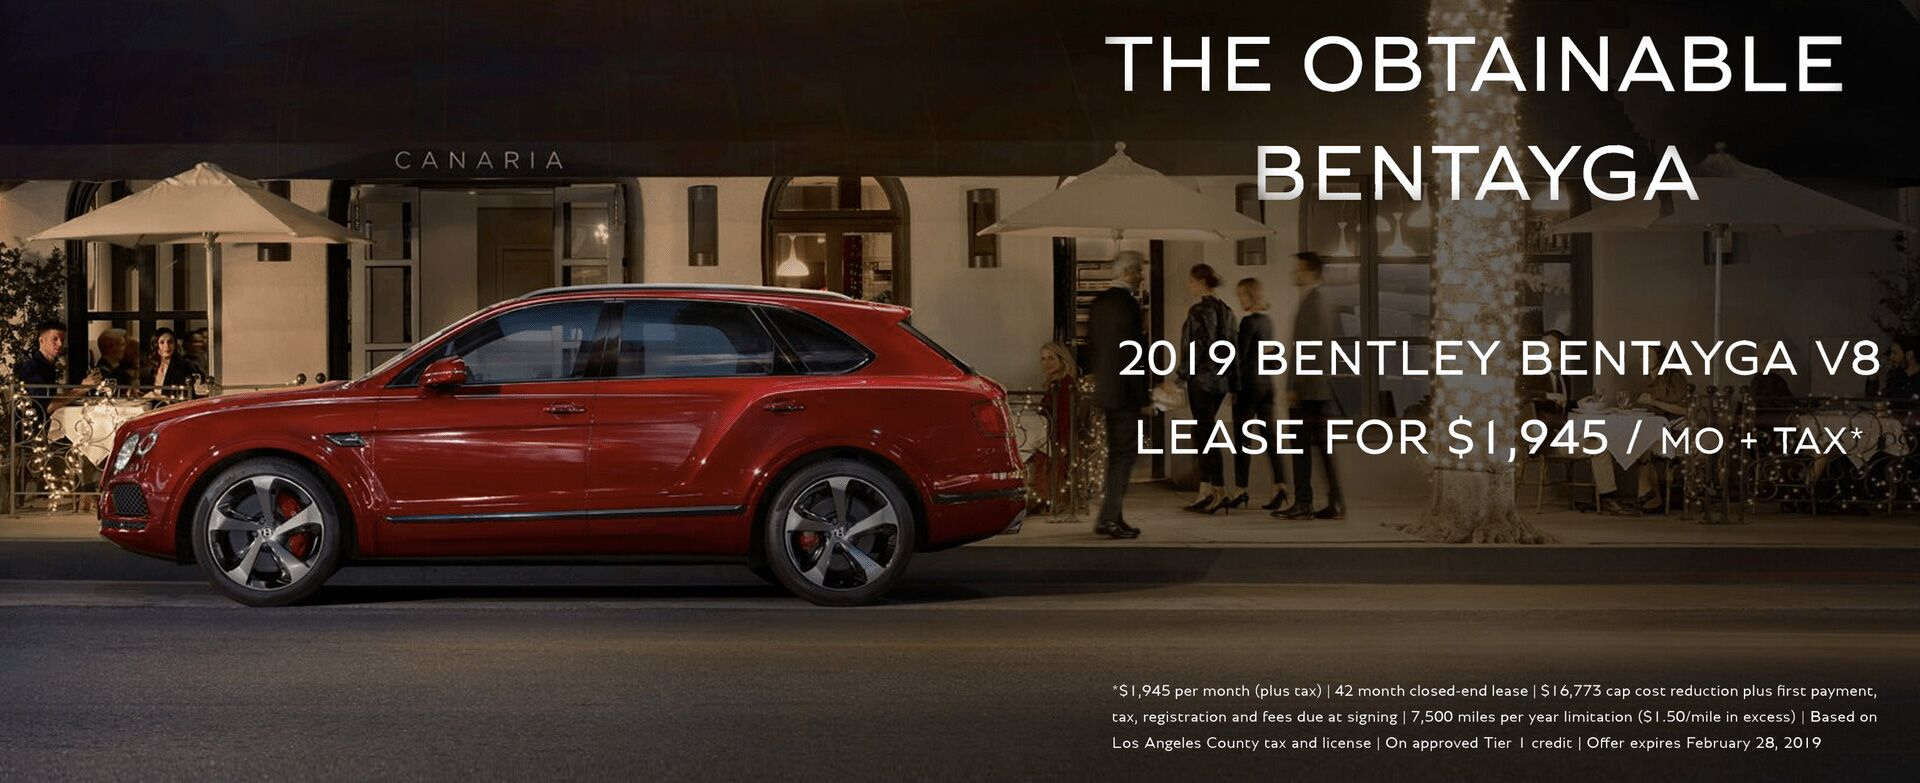 Bentley Bentayga V8- February